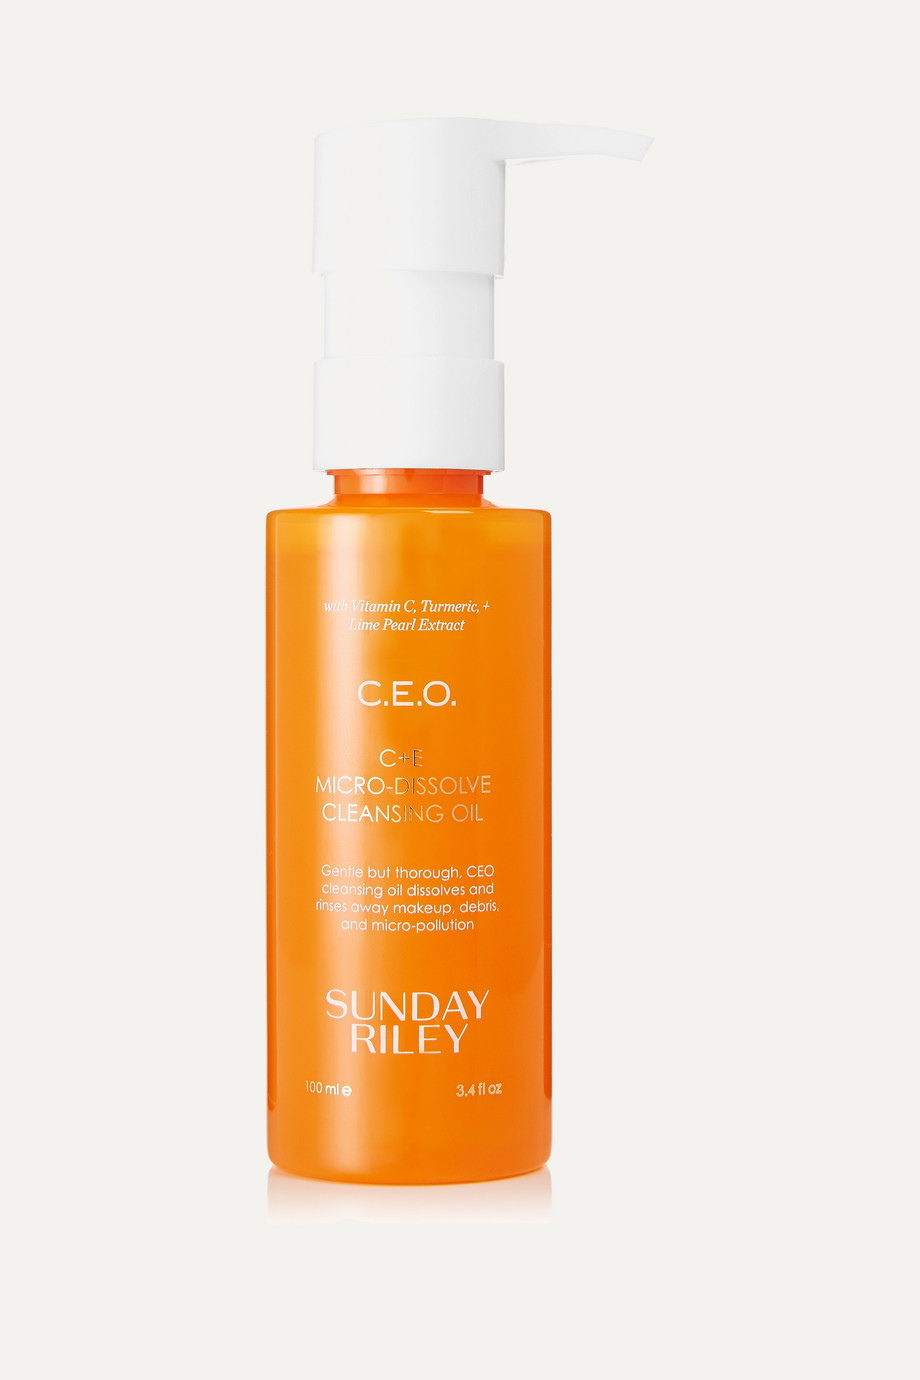 Sunday Riley C.E.O. C + E Micro-Dissolve Cleansing Oil, 100ml